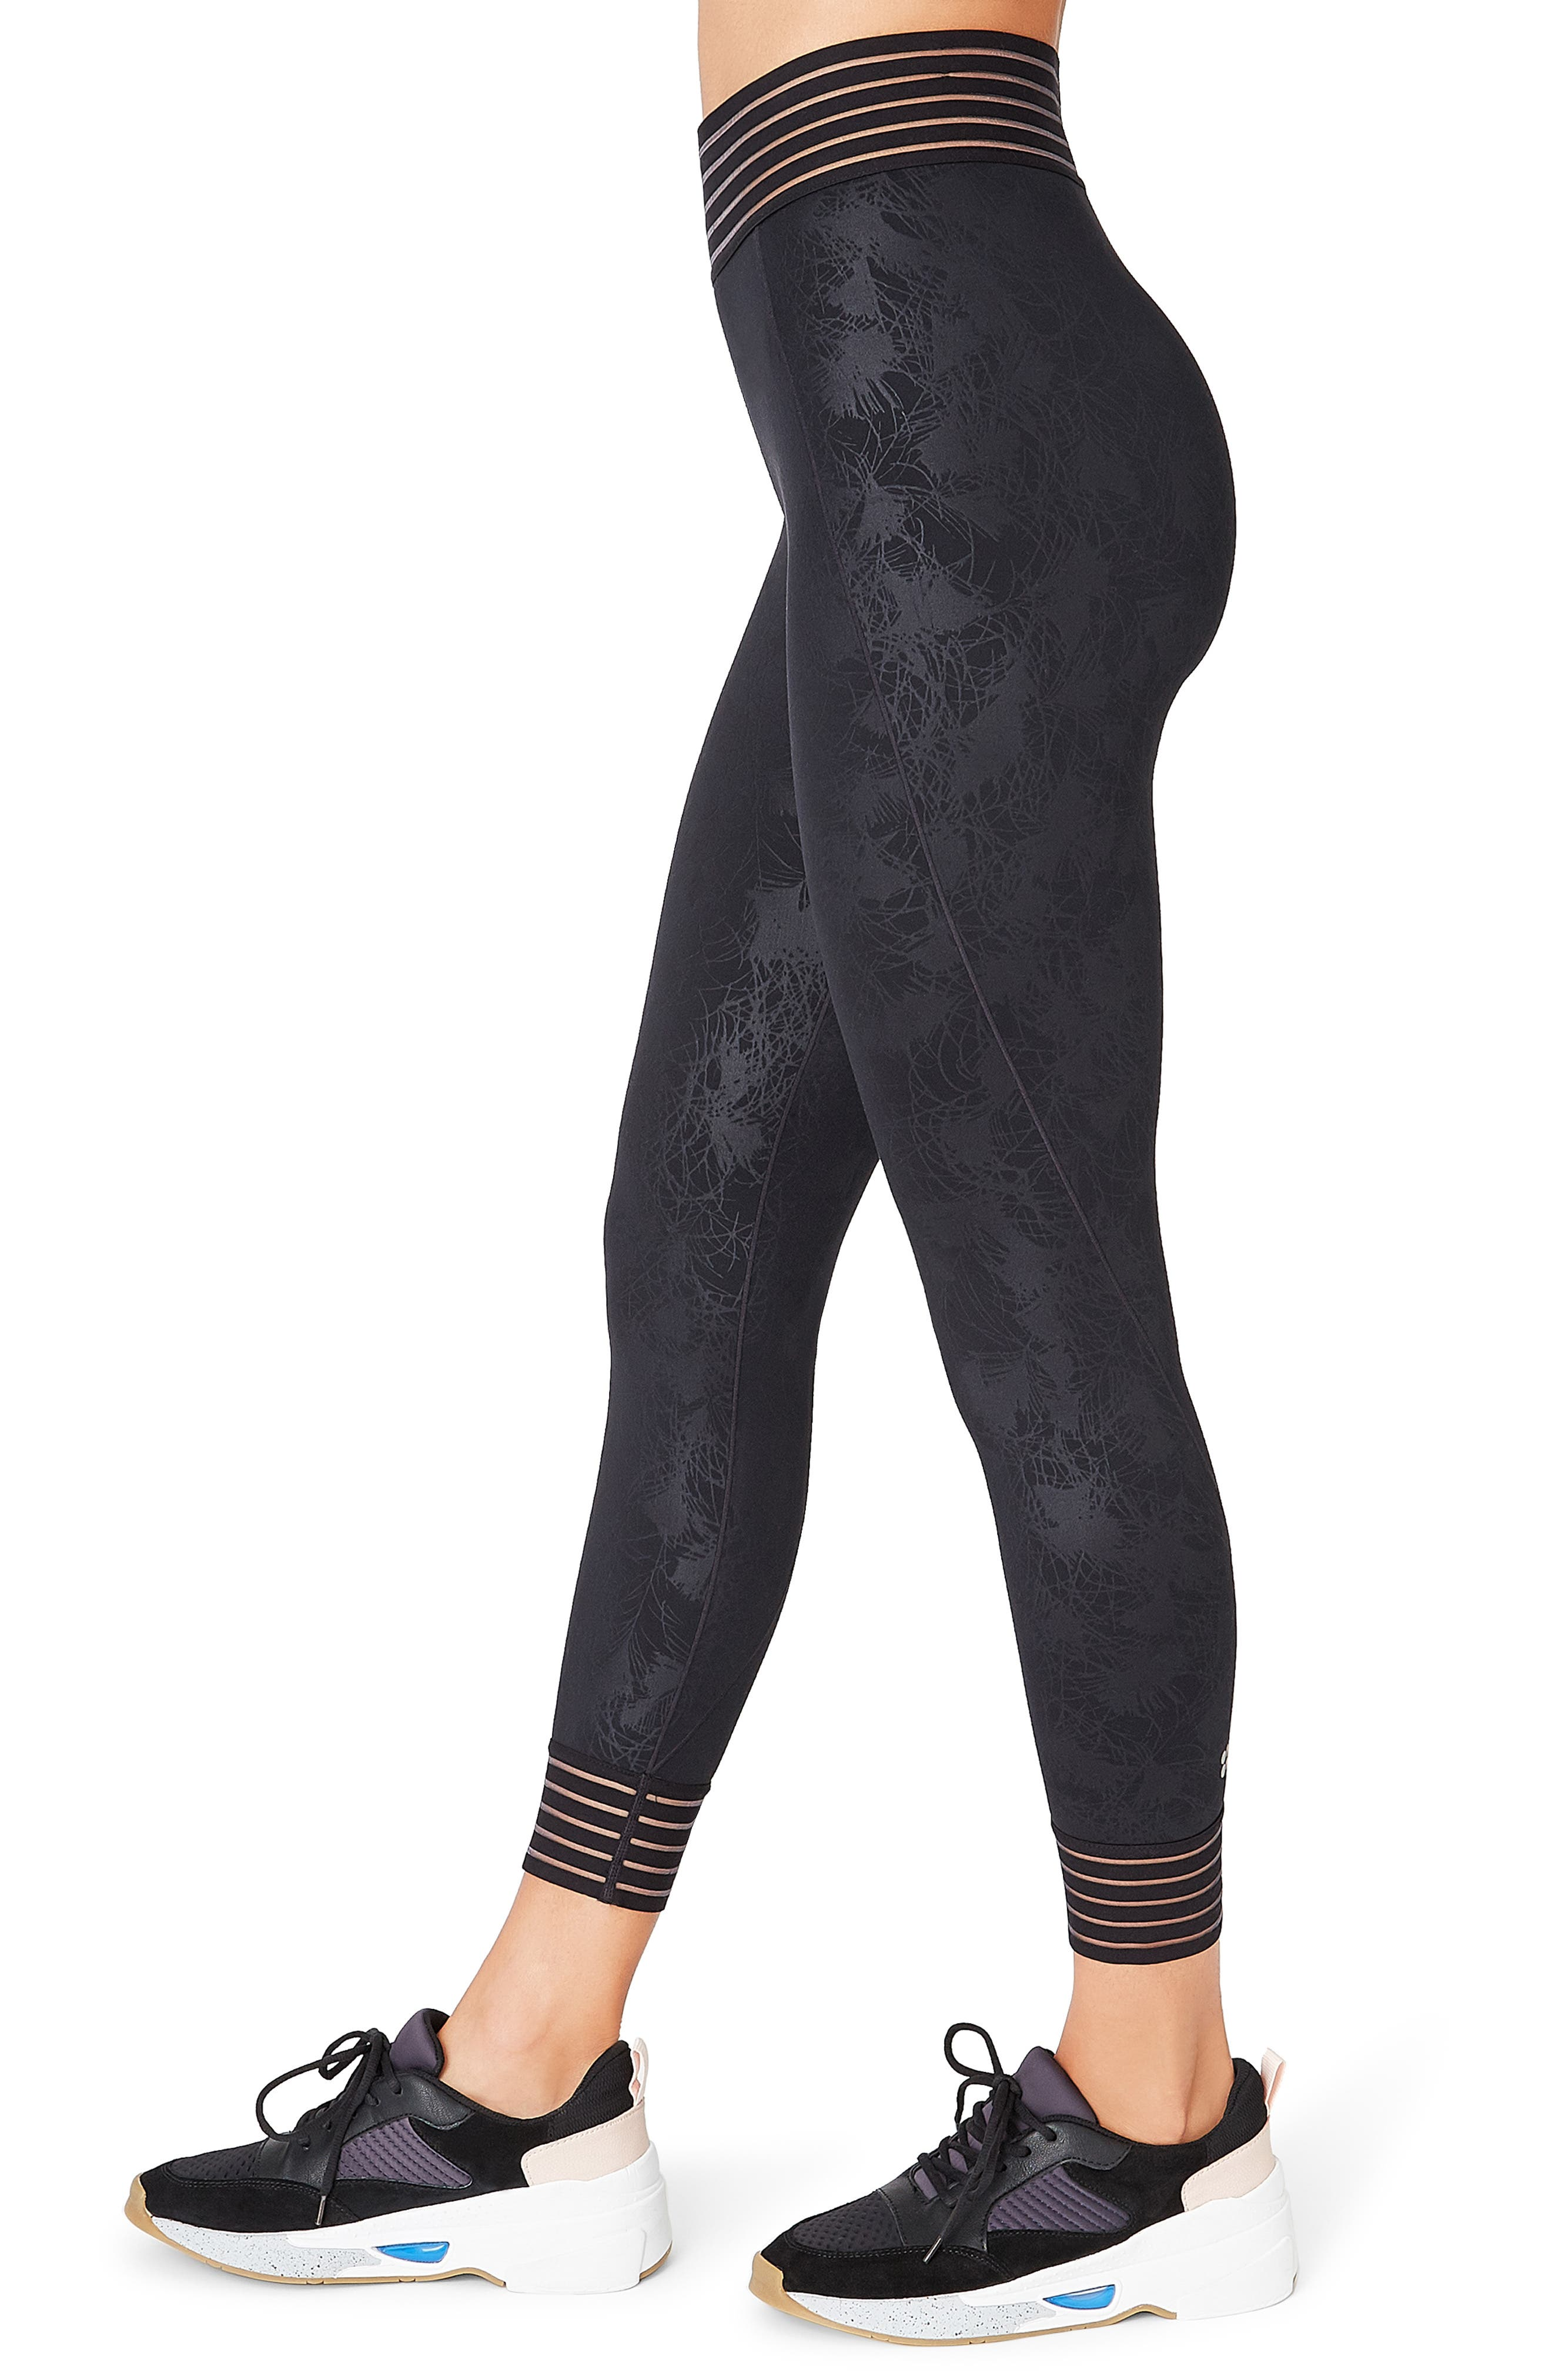 SWEATY BETTY, Contour Leggings, Alternate thumbnail 4, color, BLACK EMBOSSED FEATHER